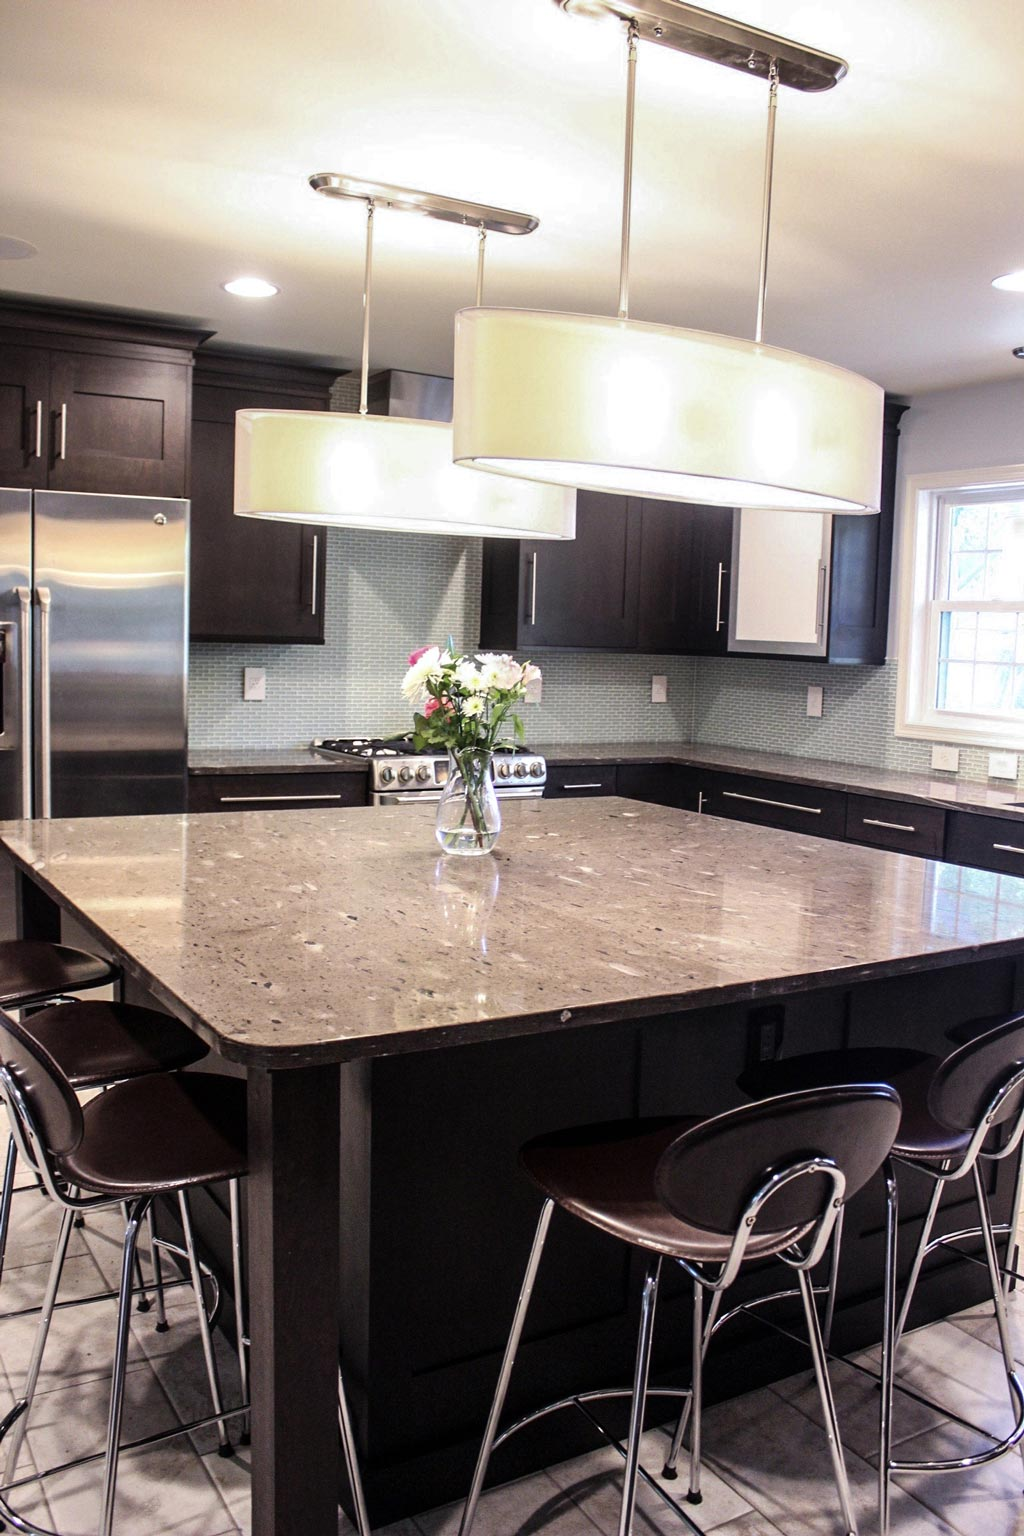 whole house renovations kitchen remodeling manassas va home remodeling vienna va